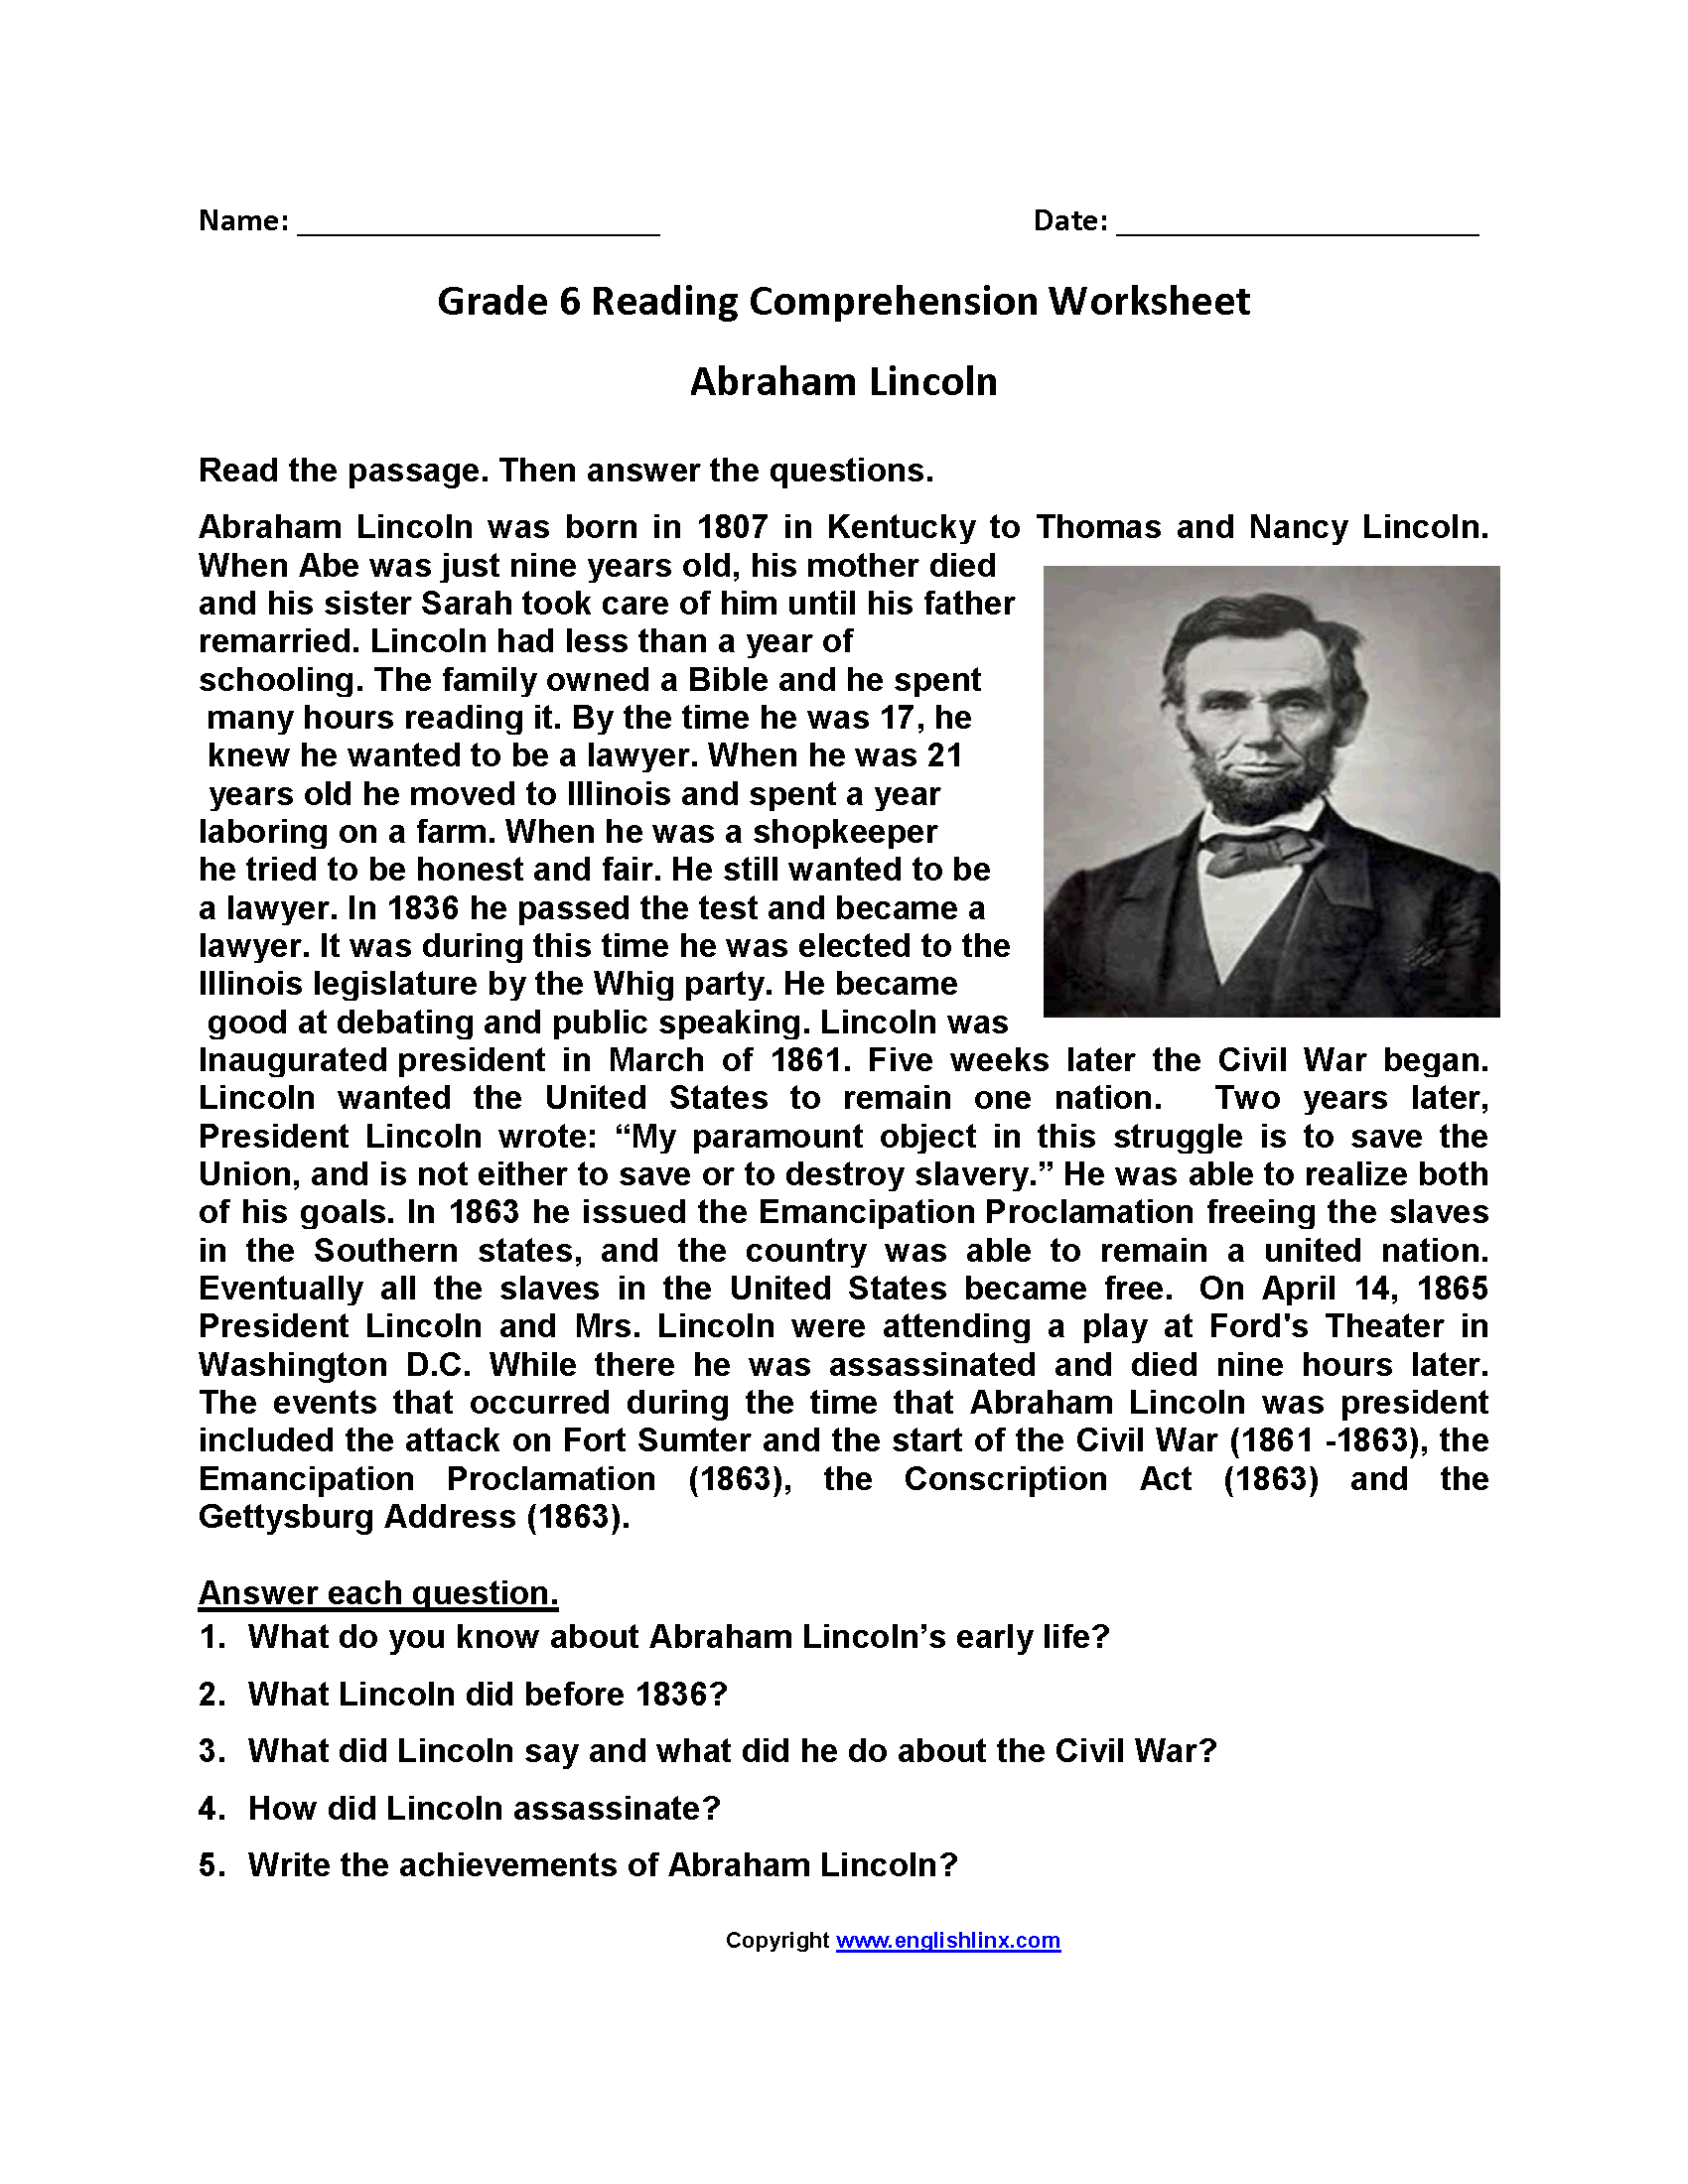 Free reading comprehension worksheets for sixth graders